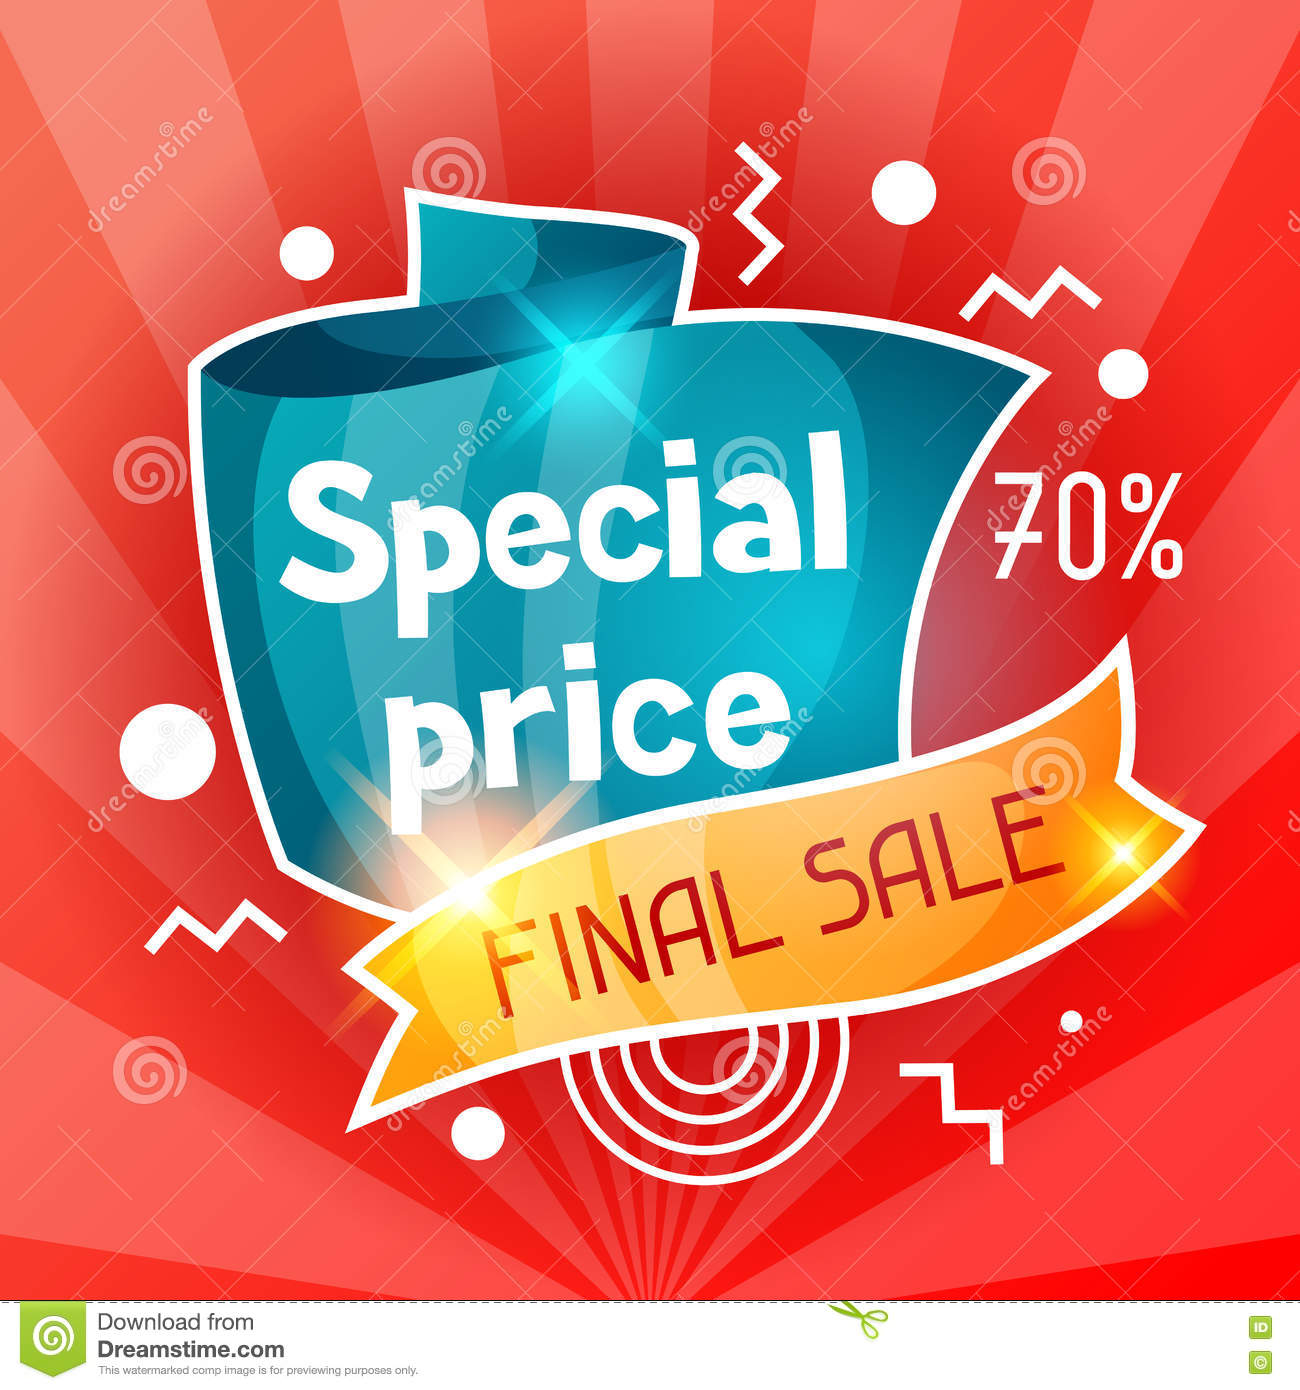 special price banner advertising flyer for commerce special price banner advertising flyer for commerce discount and offer